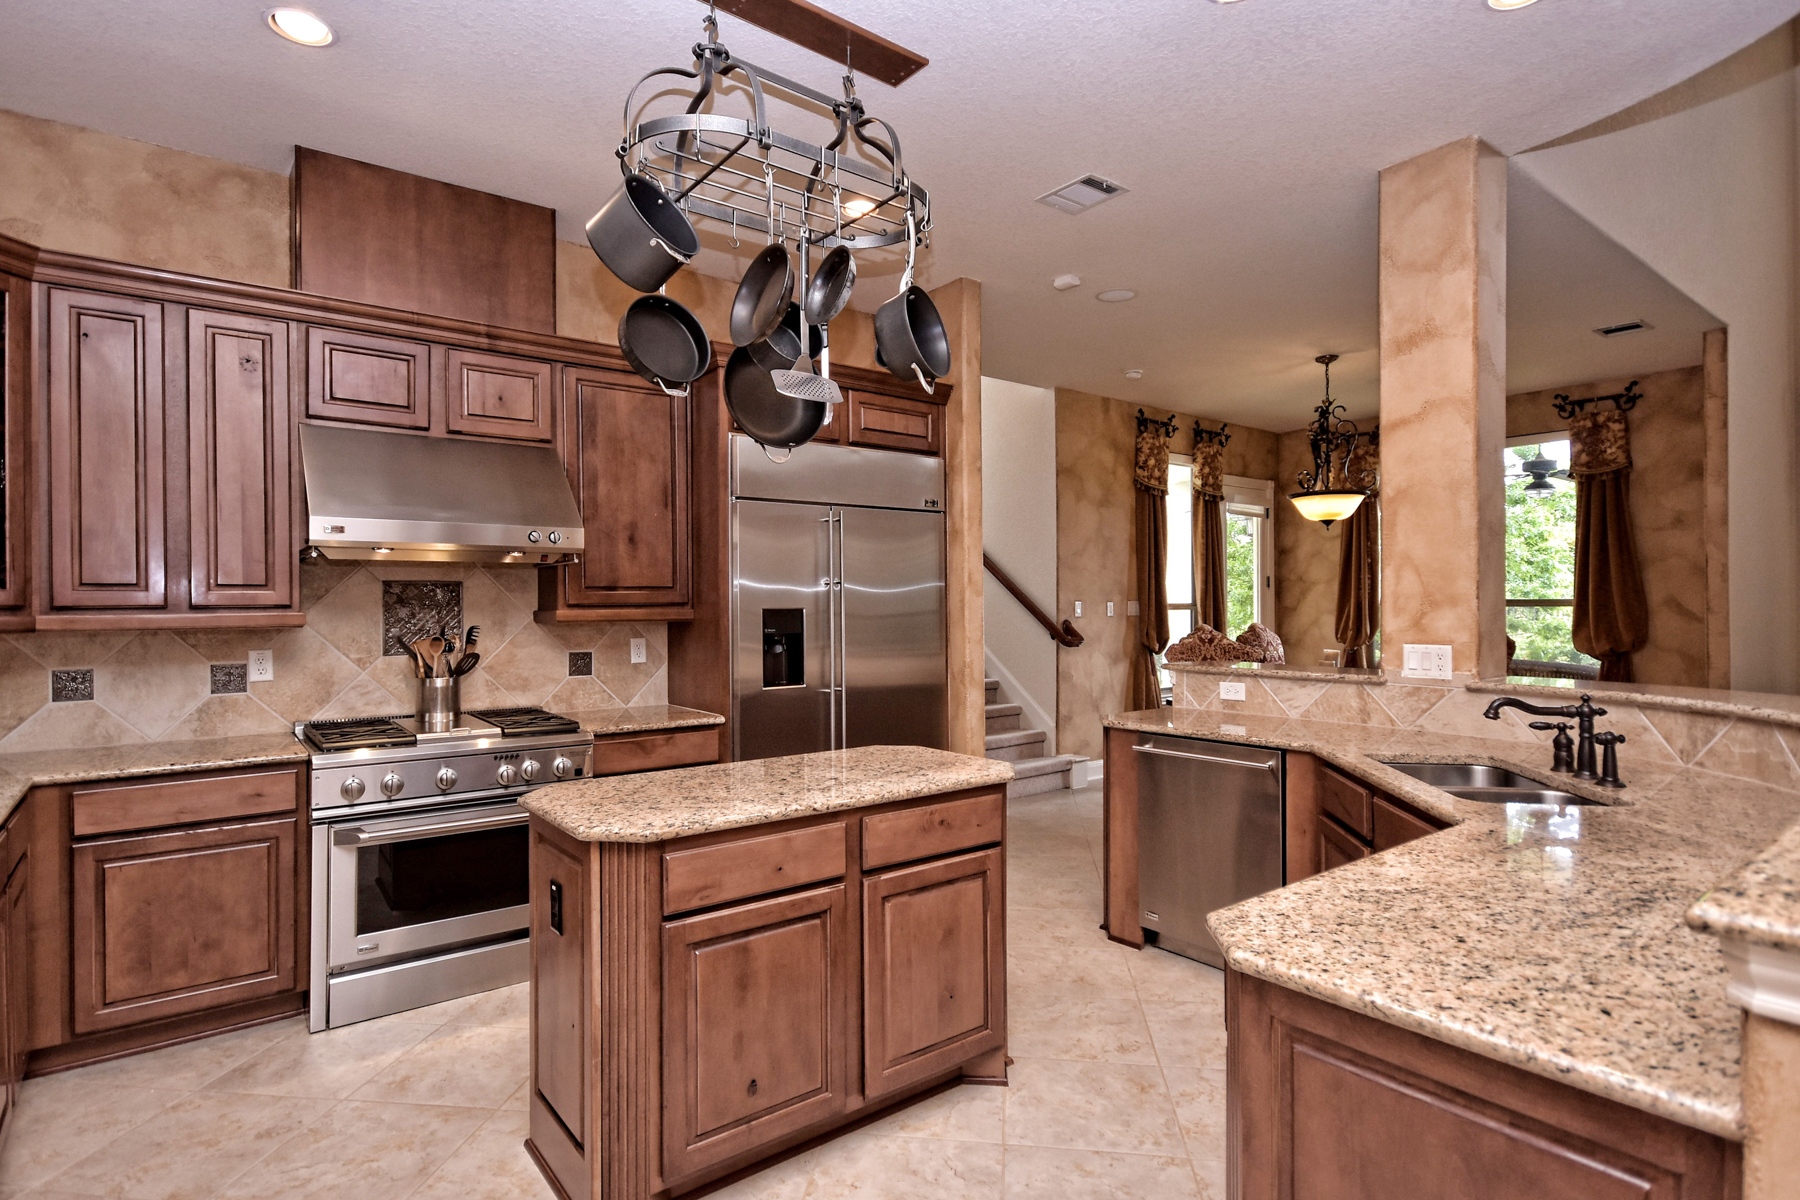 Additional photo for property listing at Exquisite Home in The Dominion 7450 Hovingham San Antonio, Texas 78257 Estados Unidos